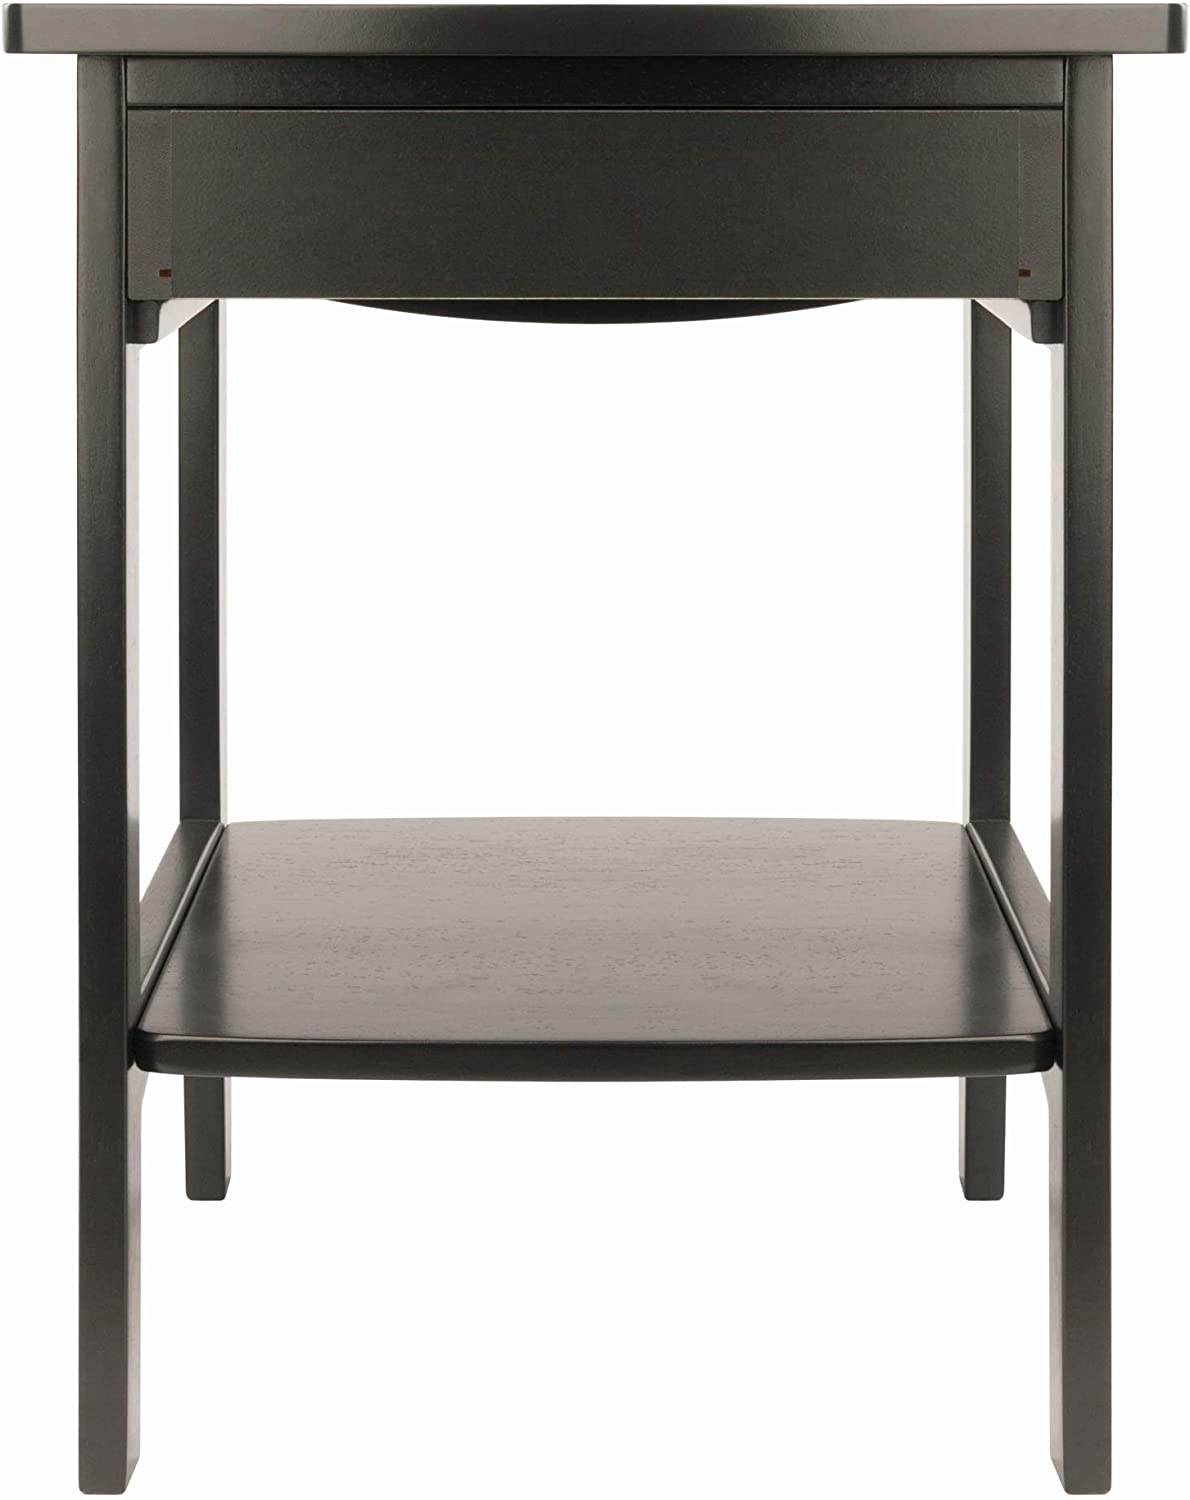 Winsome Wood Claire Accent Table, Black: Kitchen & Dining